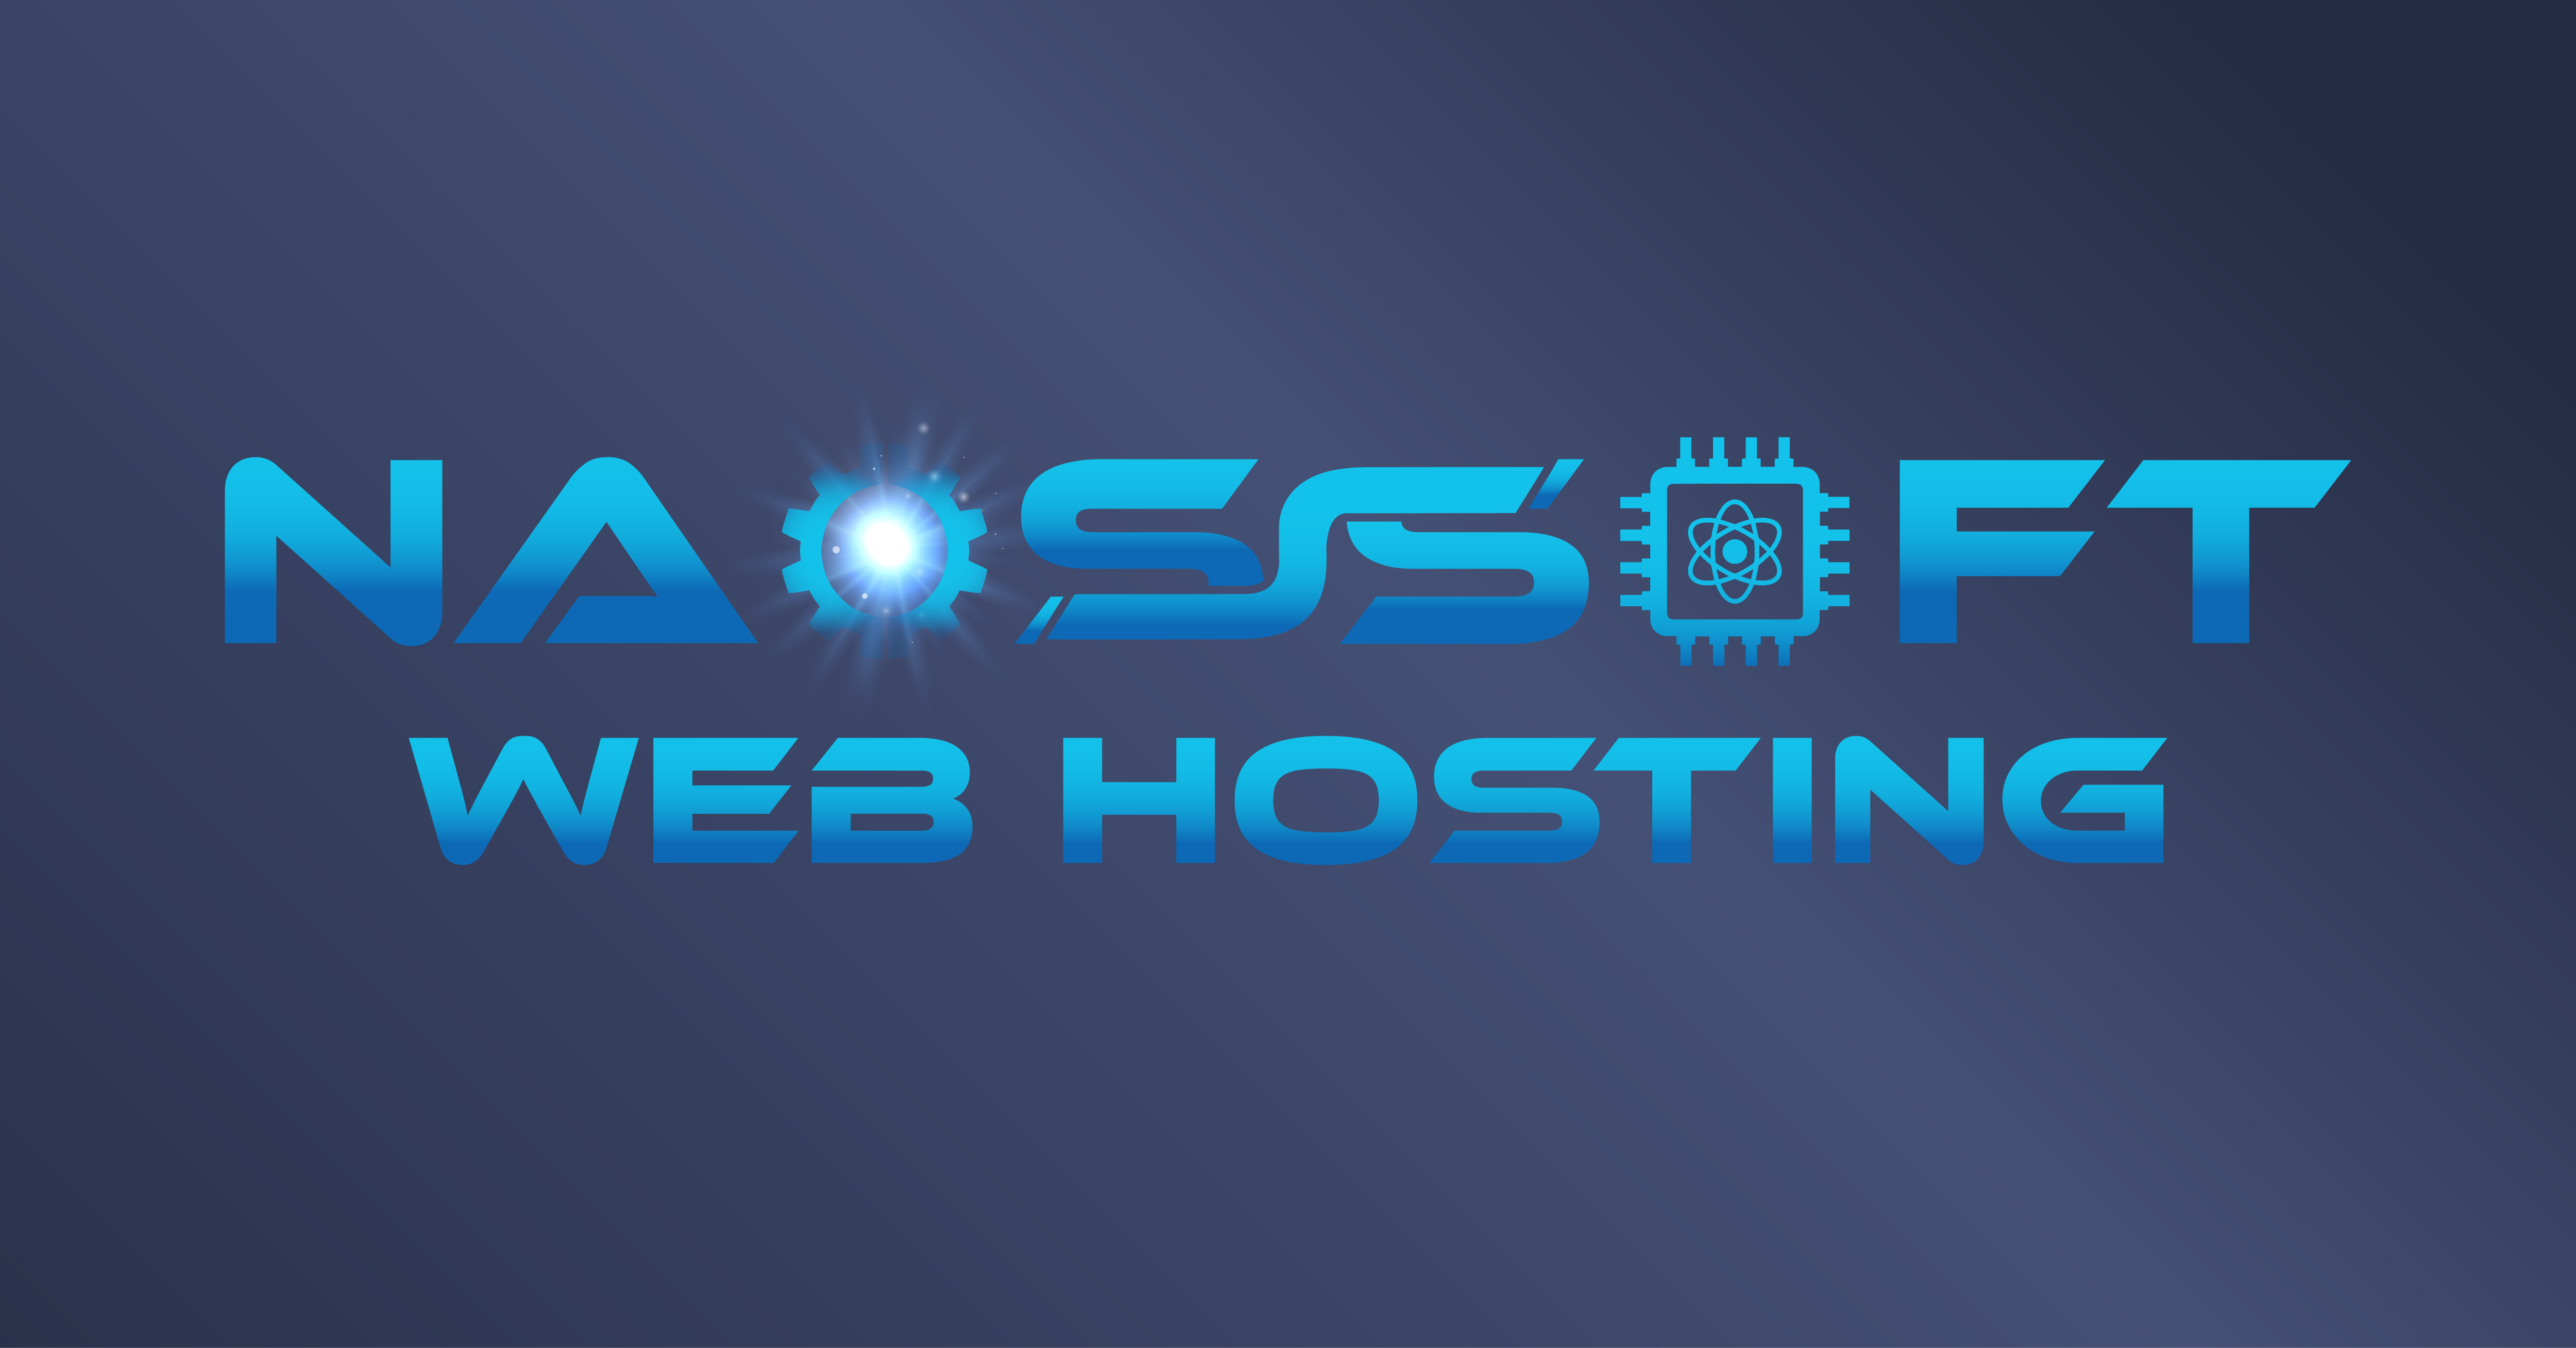 NAOSSOFT Launches New Web Hosting Service